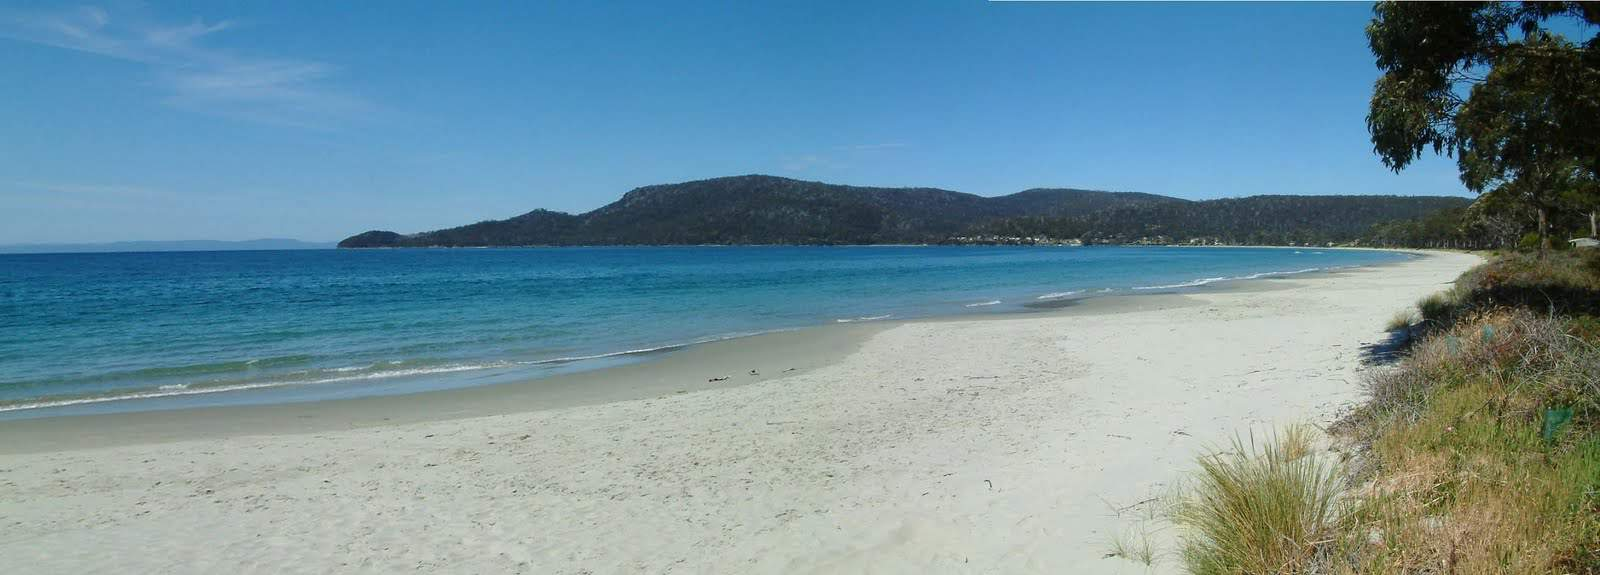 Adventure Bay, Bruny Island Tasmania